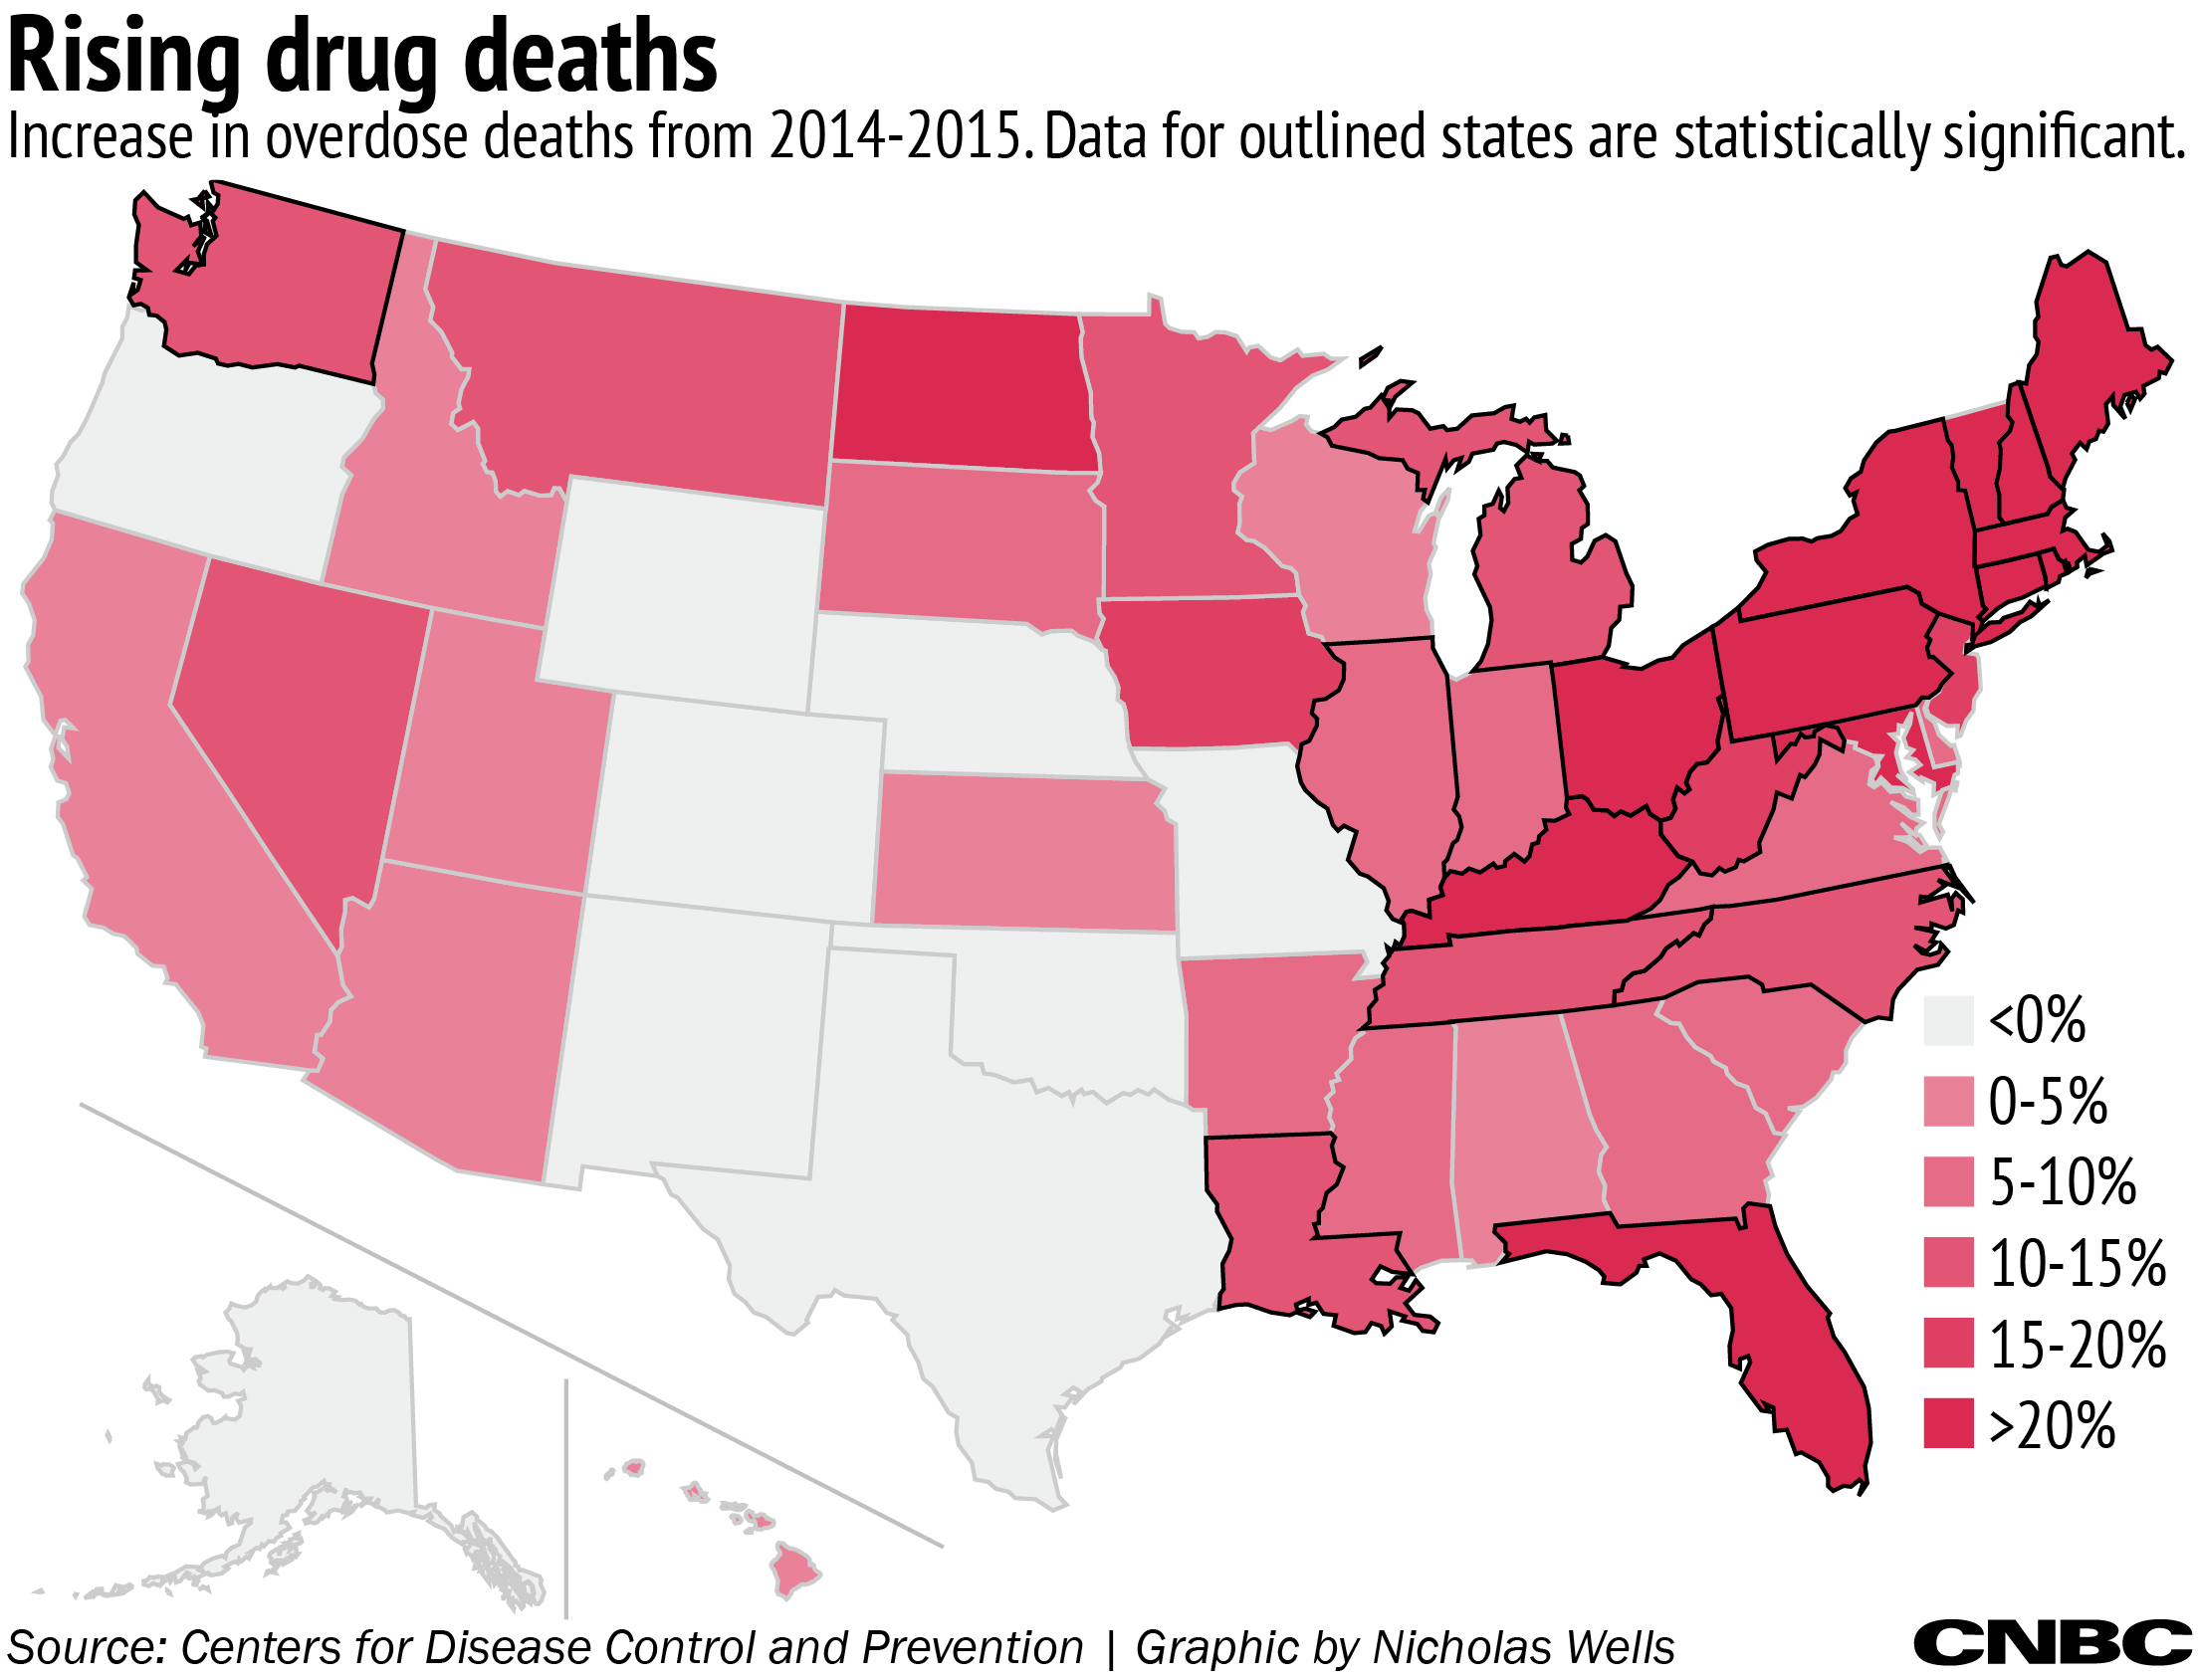 Cost An Business Nightly Waking Worsens Report Soars Epidemic Overdose Of Up The As From Opioid